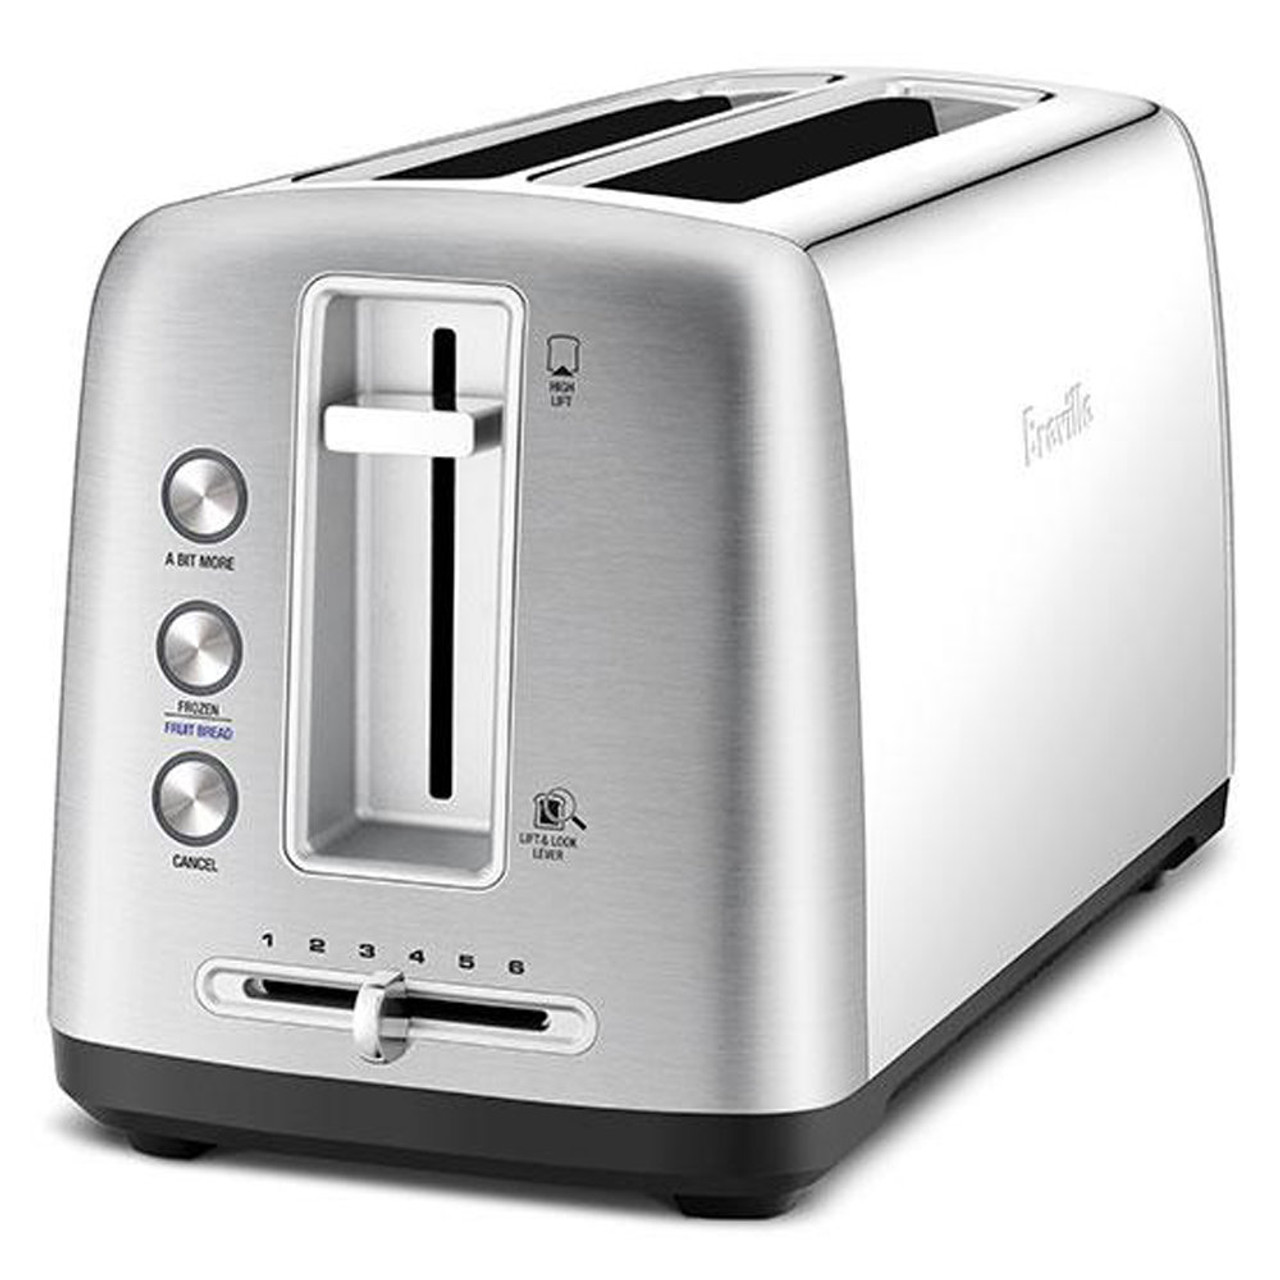 Breville LTA650BSS The Toast Control Long 4 Slice Toaster - Stainless Steel